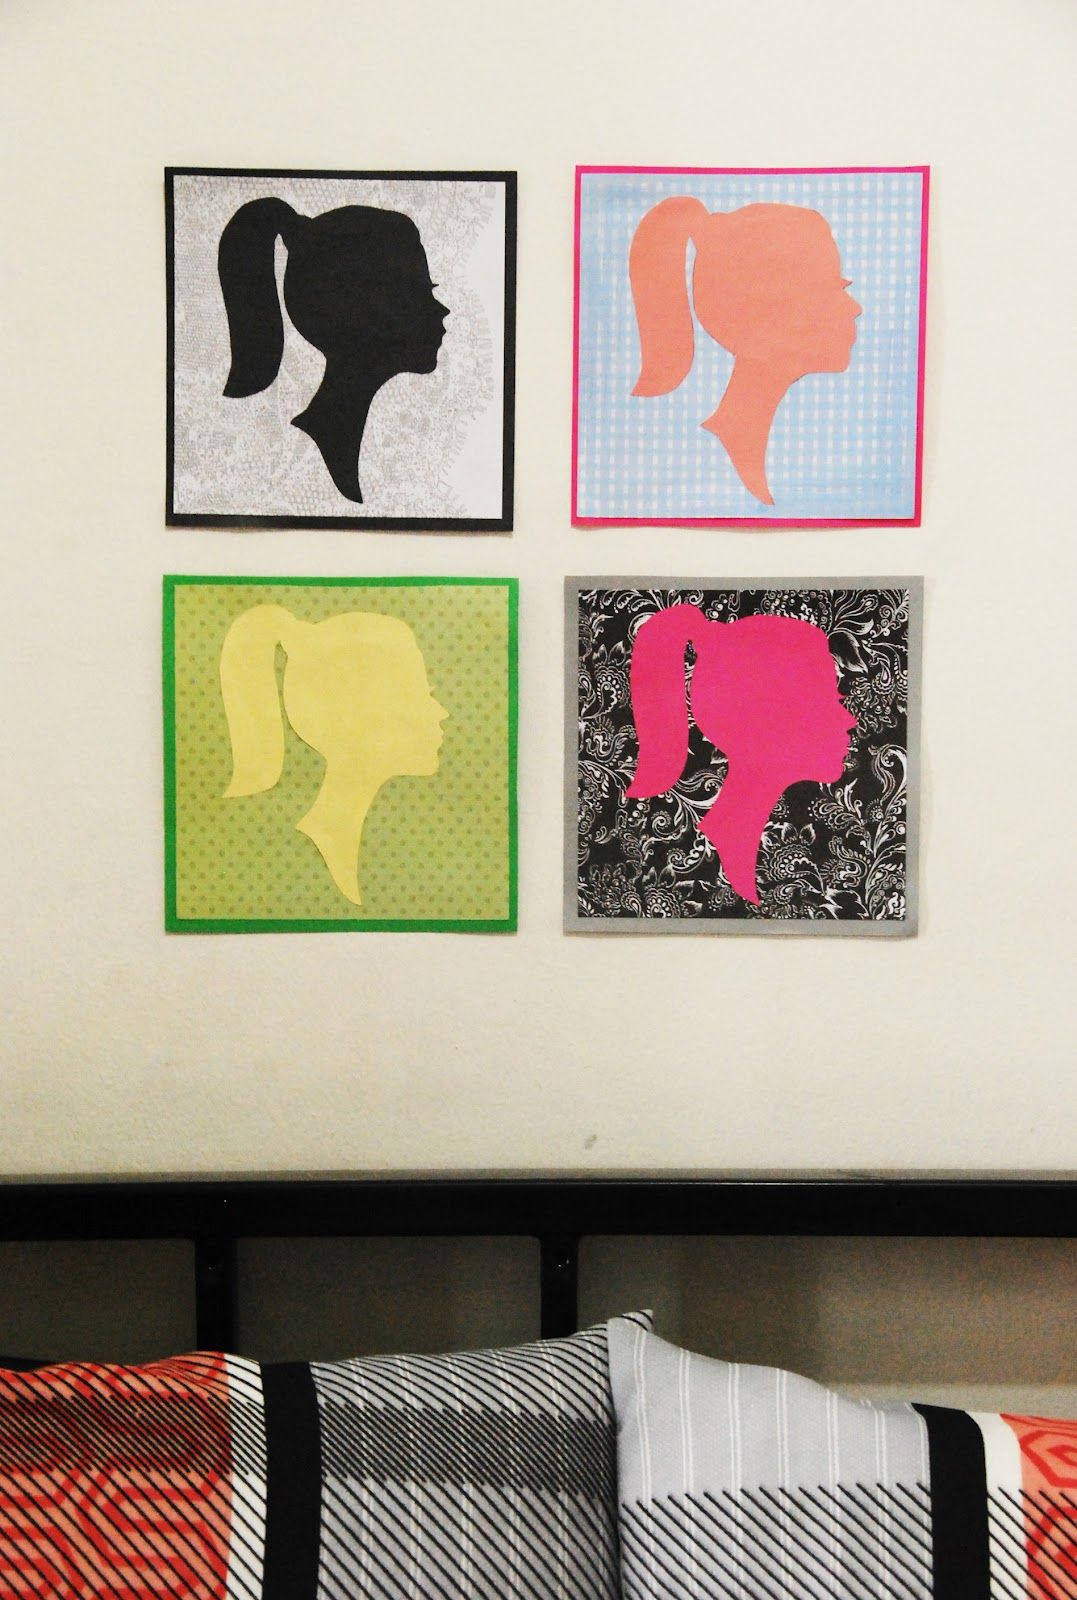 The Pink Doormat Paper Silhouette Artwork